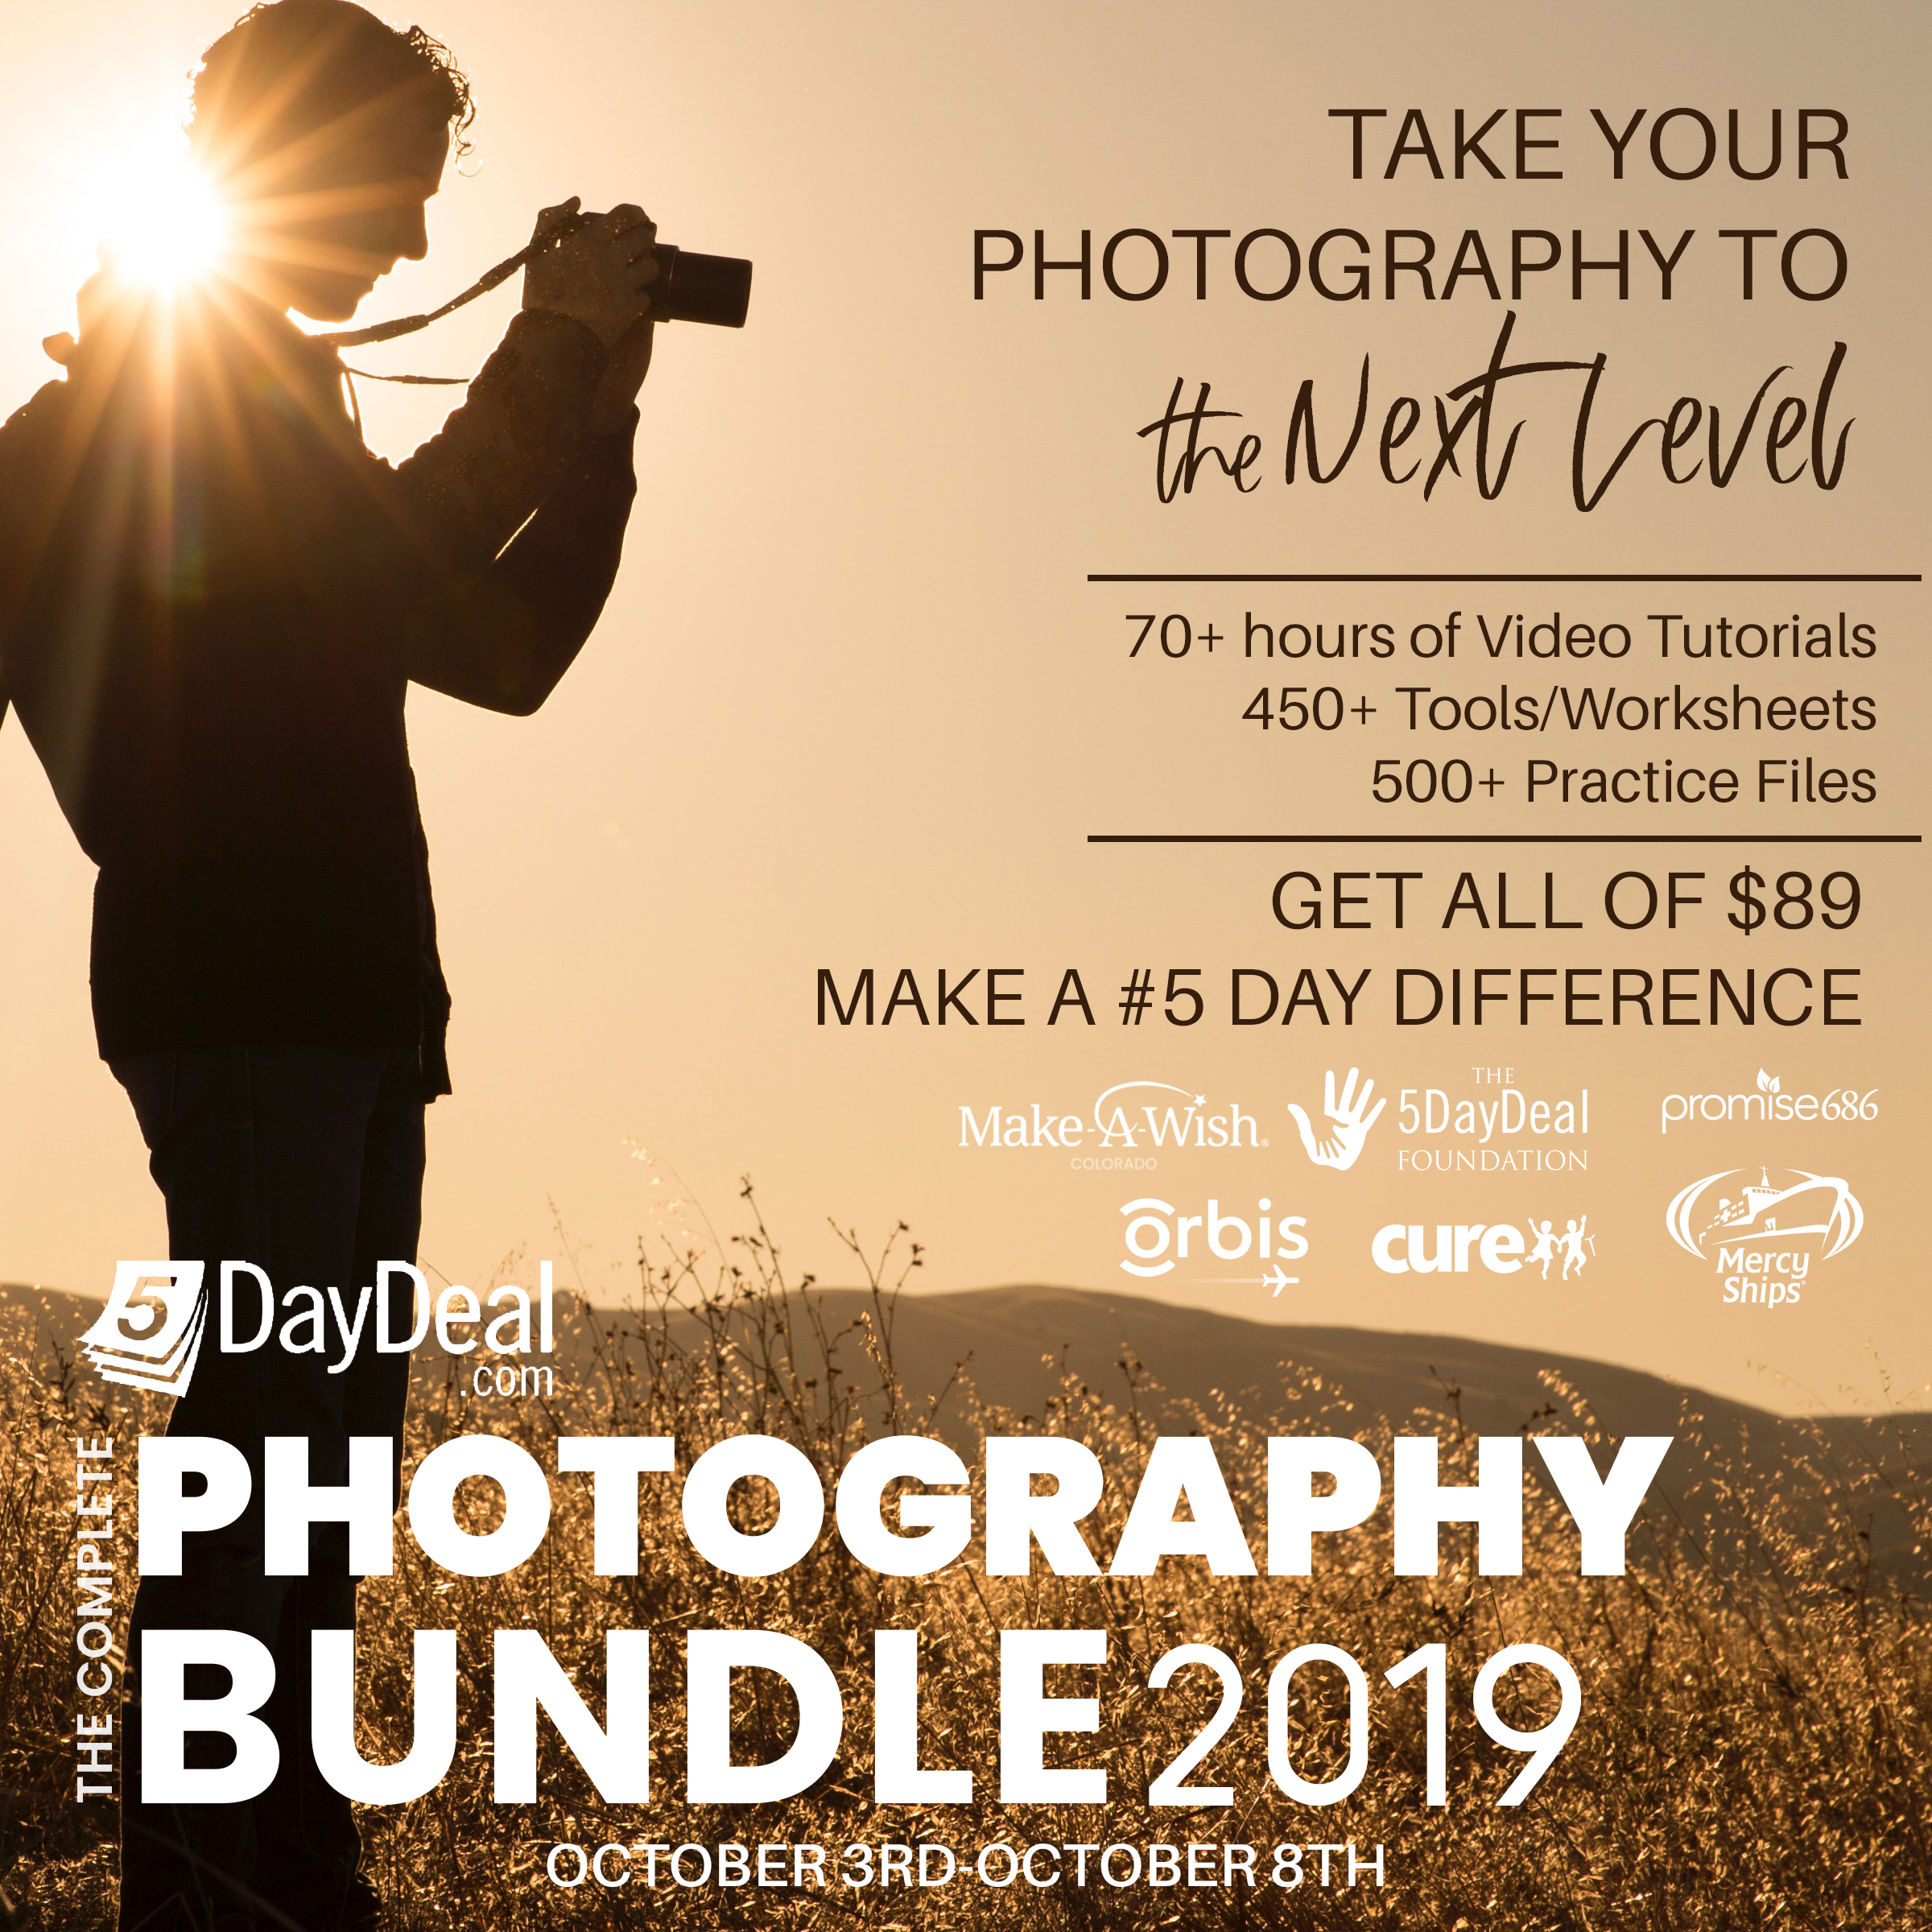 5DayDeal: The $89 Complete Photography Bundle Will Help You Grow